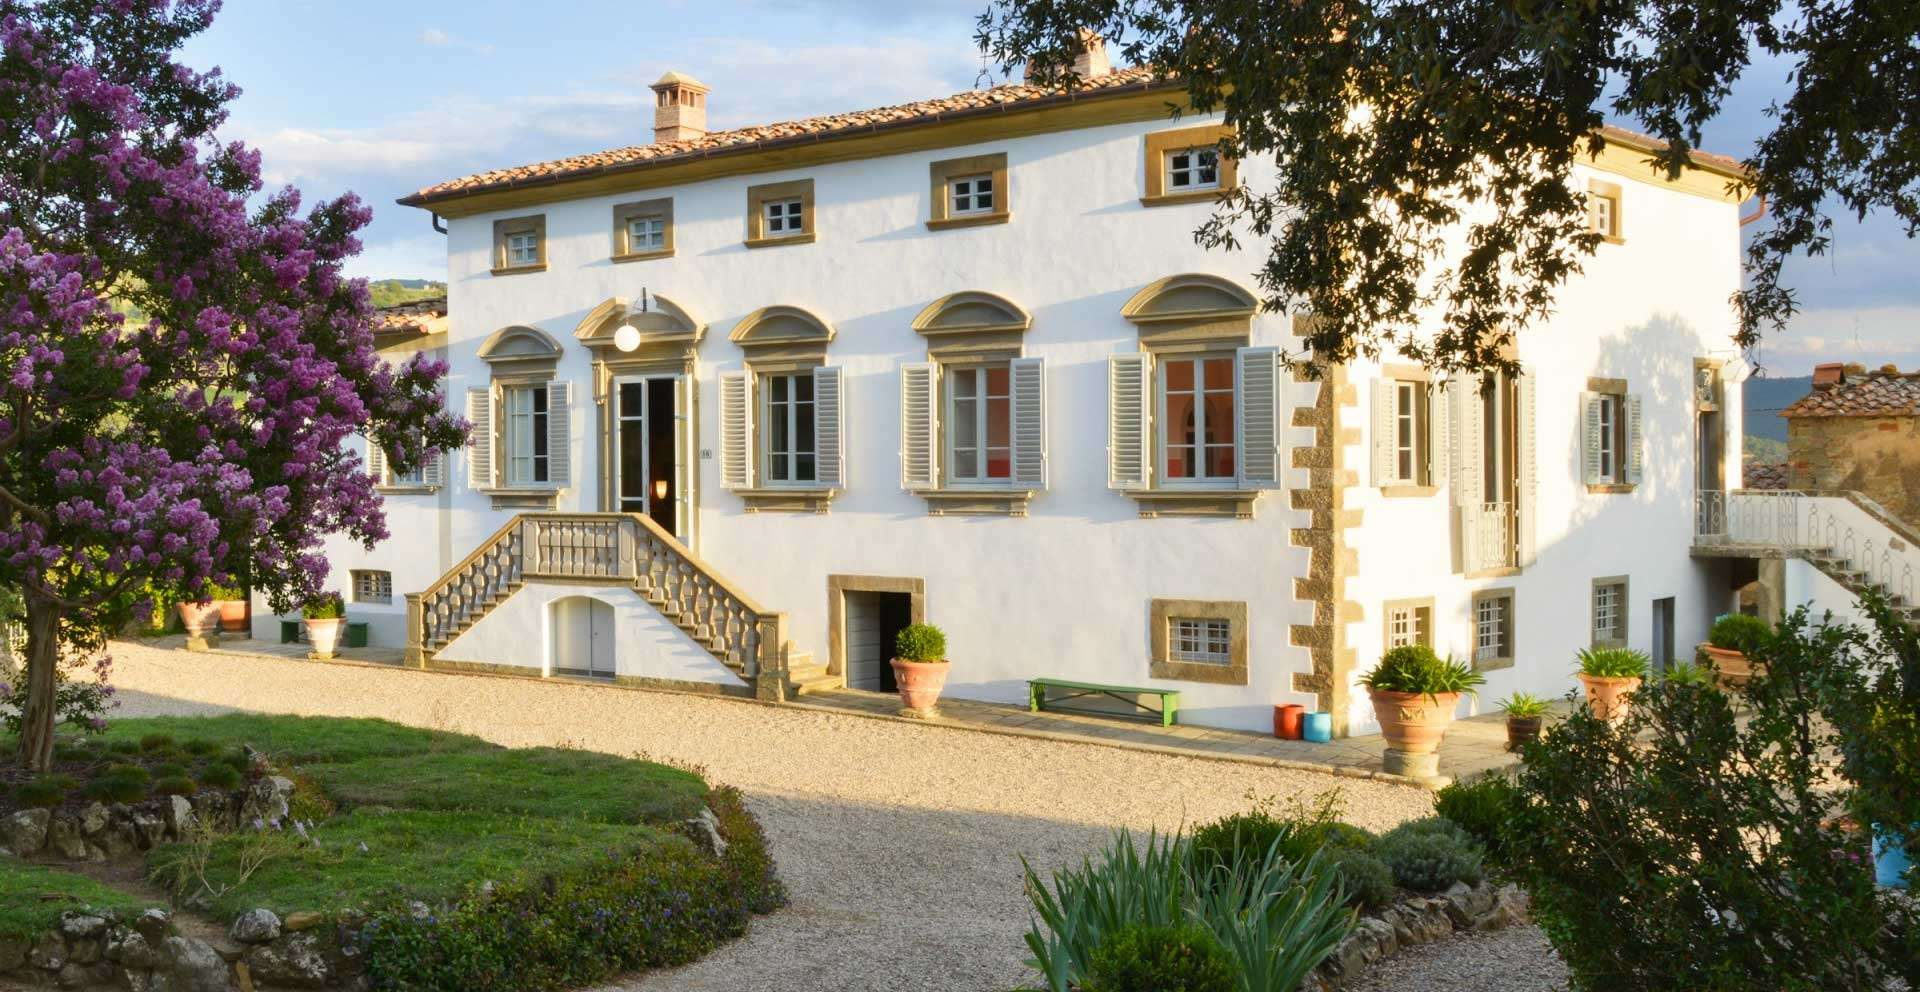 Villa Caprolo, elegant 17th century Luxury villa with a private pool, climatized bedrooms and luxury bathrooms within walking distance of Greve in Chianti, Tuscany, Italy.